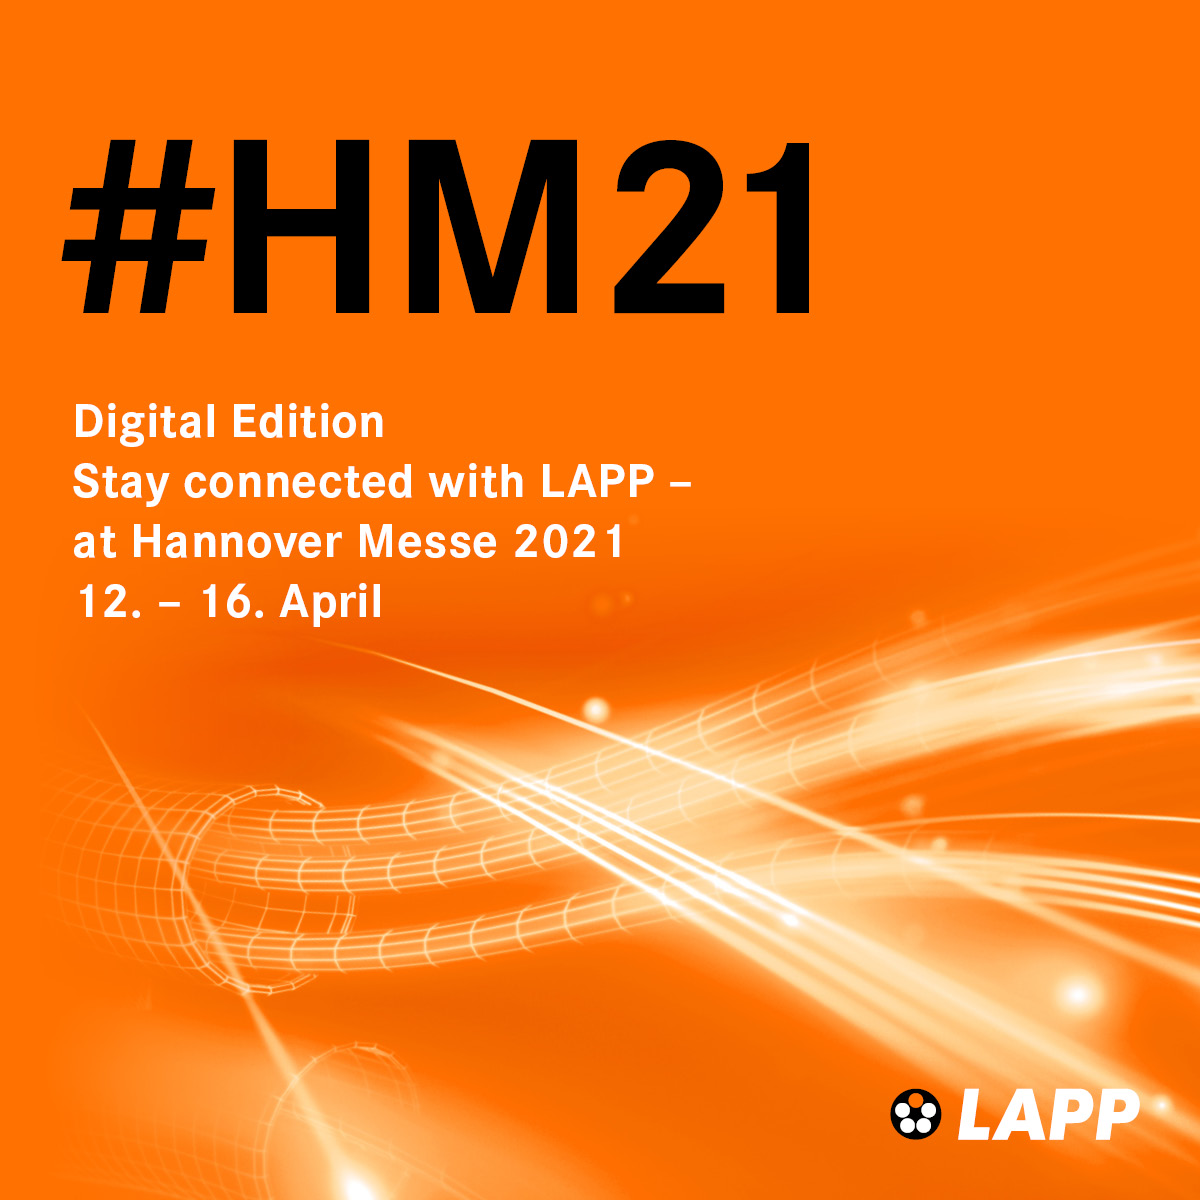 lapp-hannover-messe-2021-some